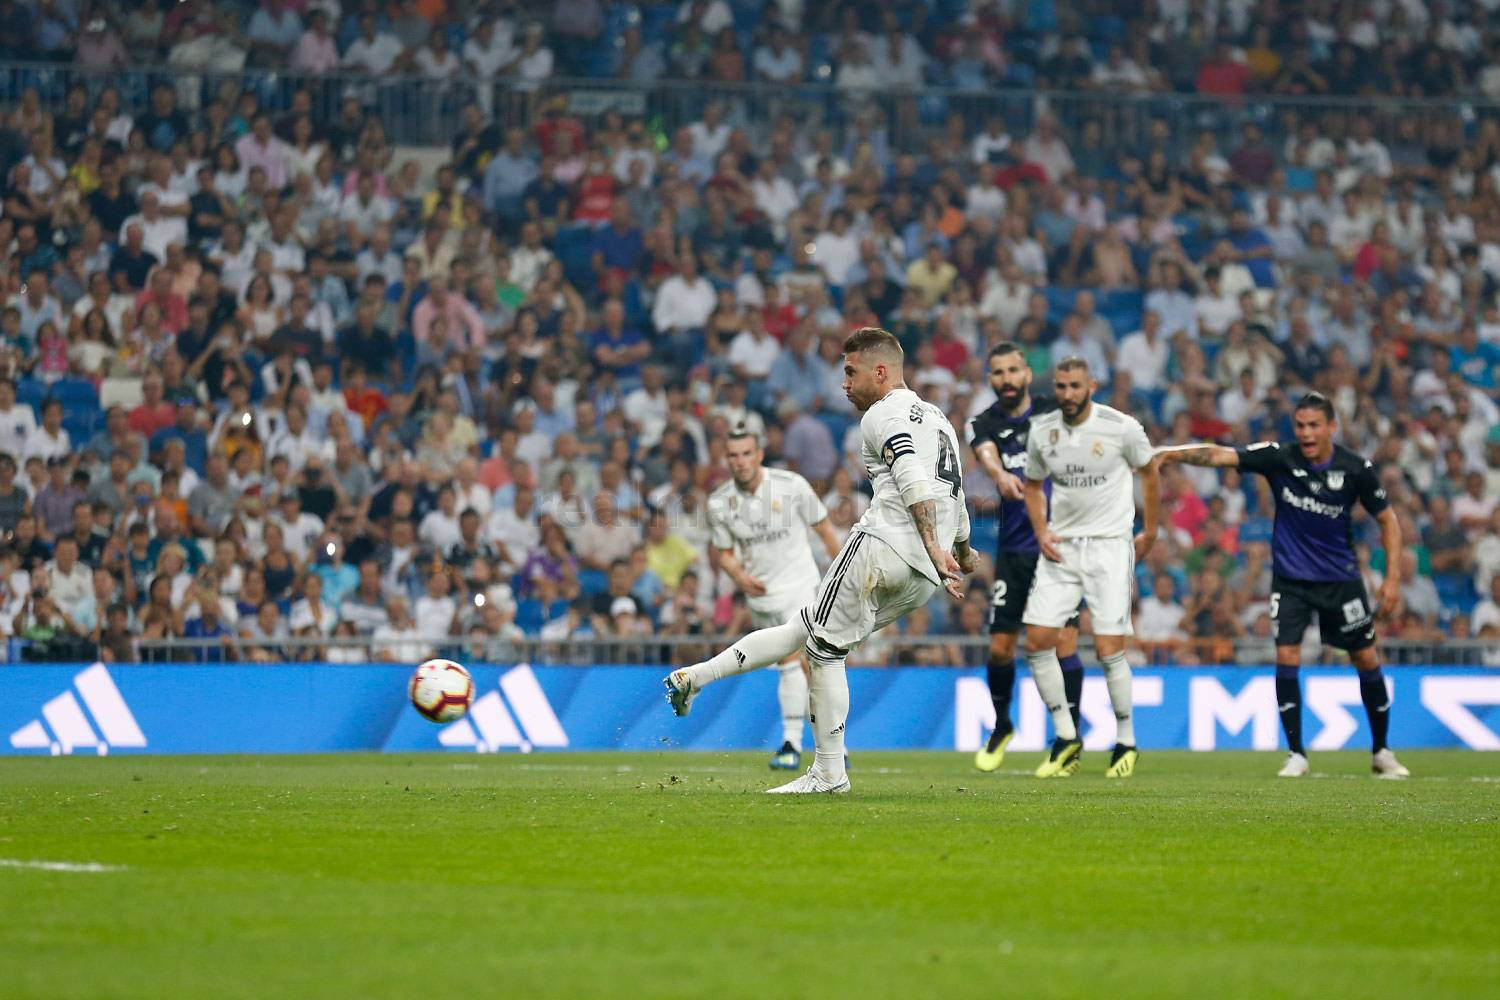 Real Madrid - Real Madrid - Leganés - 01-09-2018